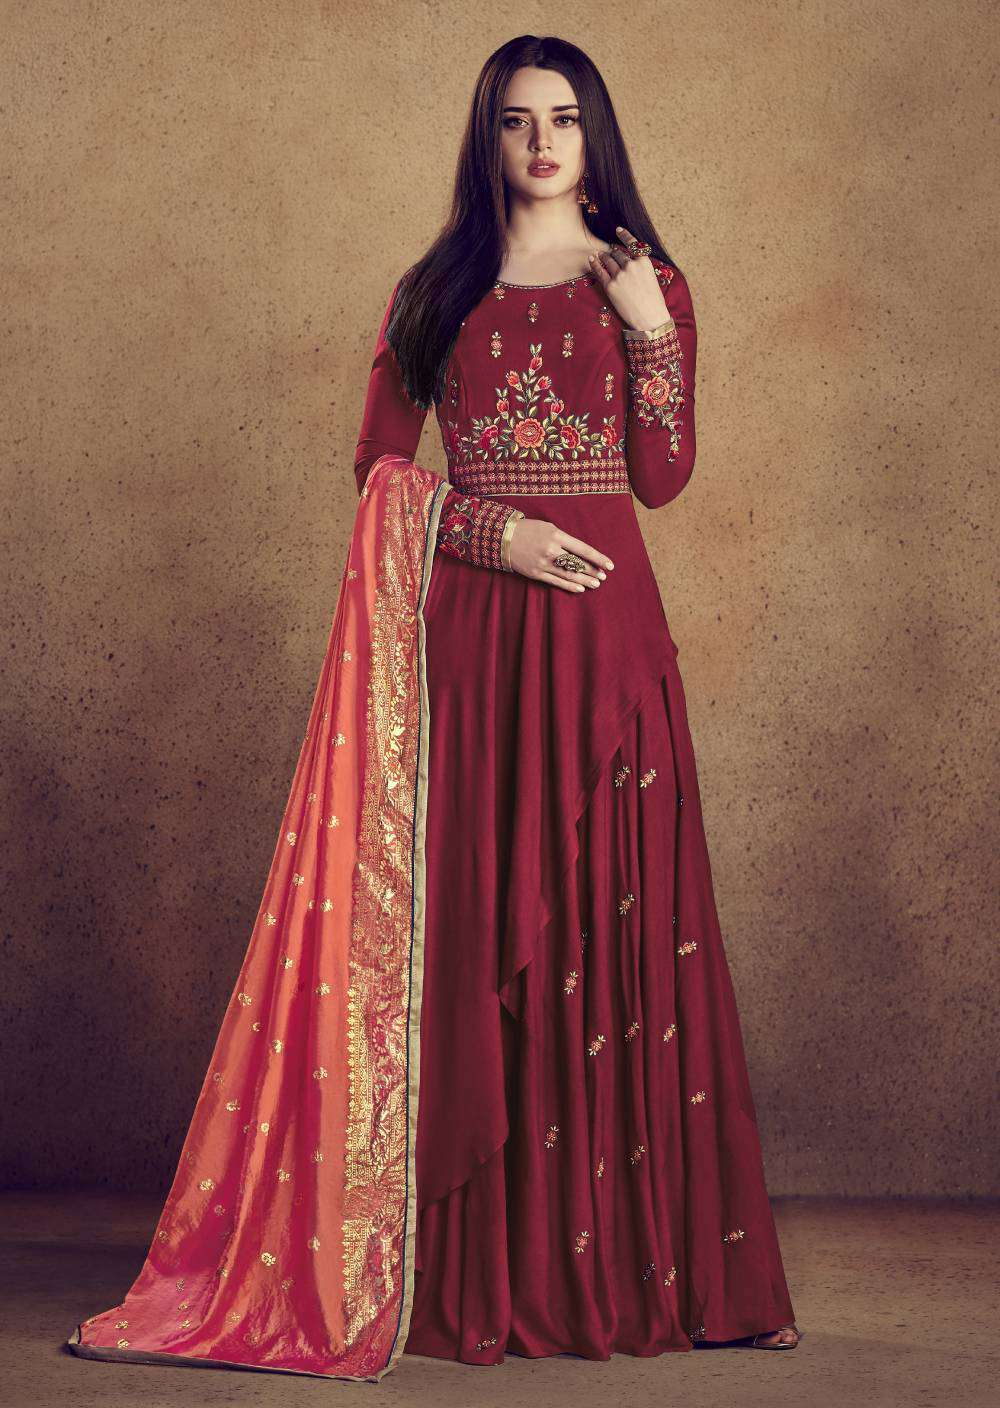 Red Rayon Designer Full Flair Gown Style Embroidered Salwar Kameez MYSK-1927